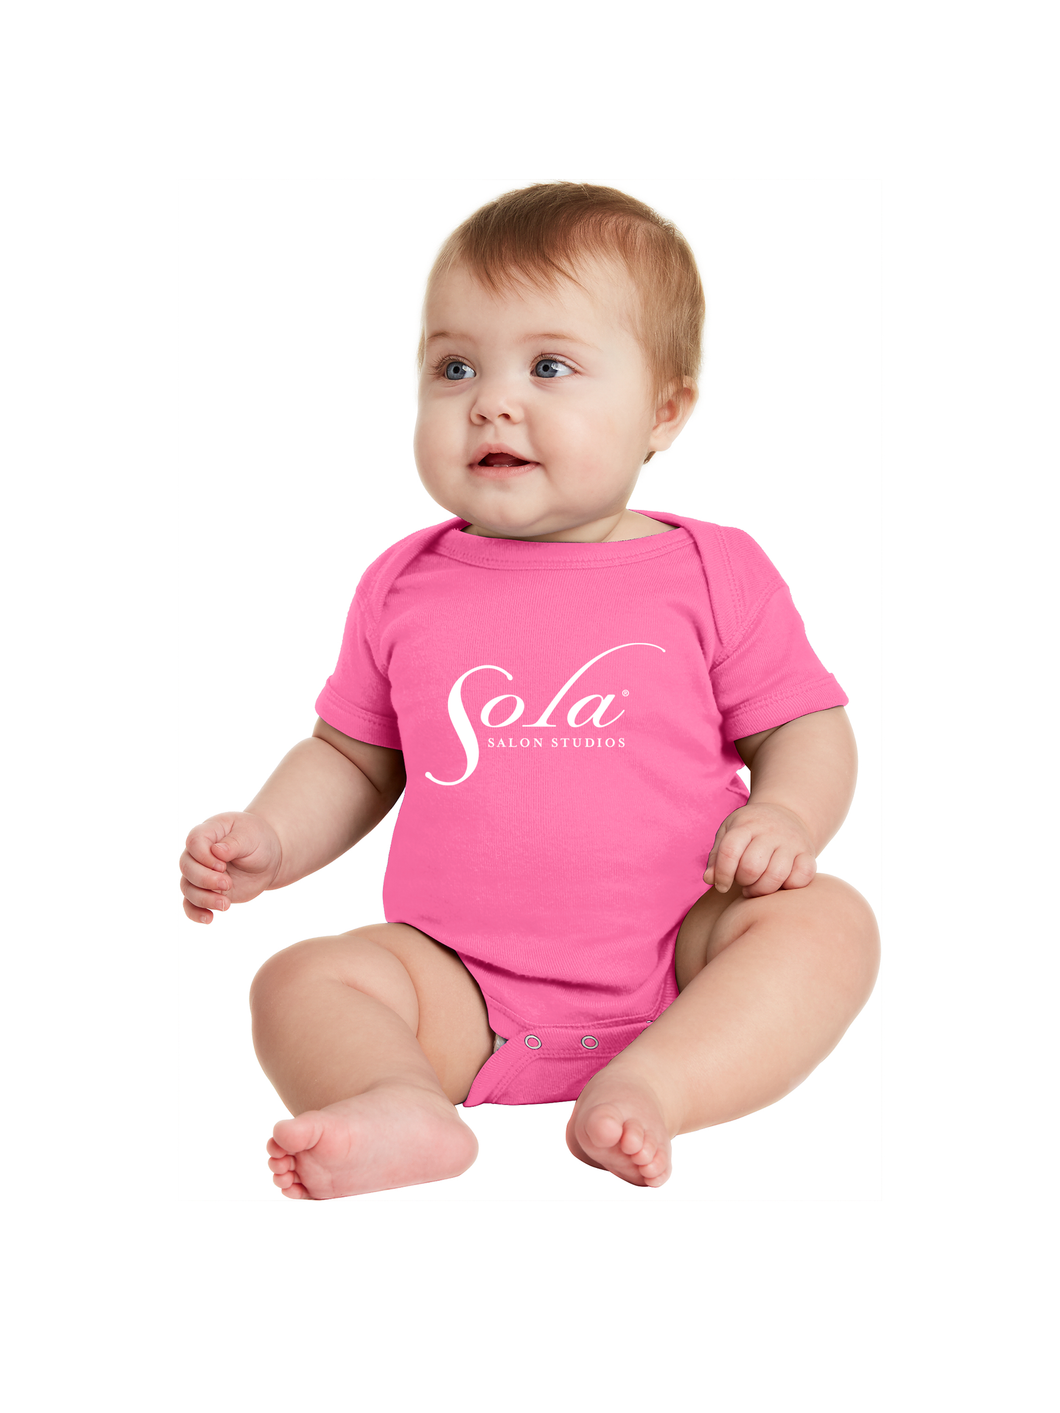 Sola Classic Logo Onesies (three colors available)